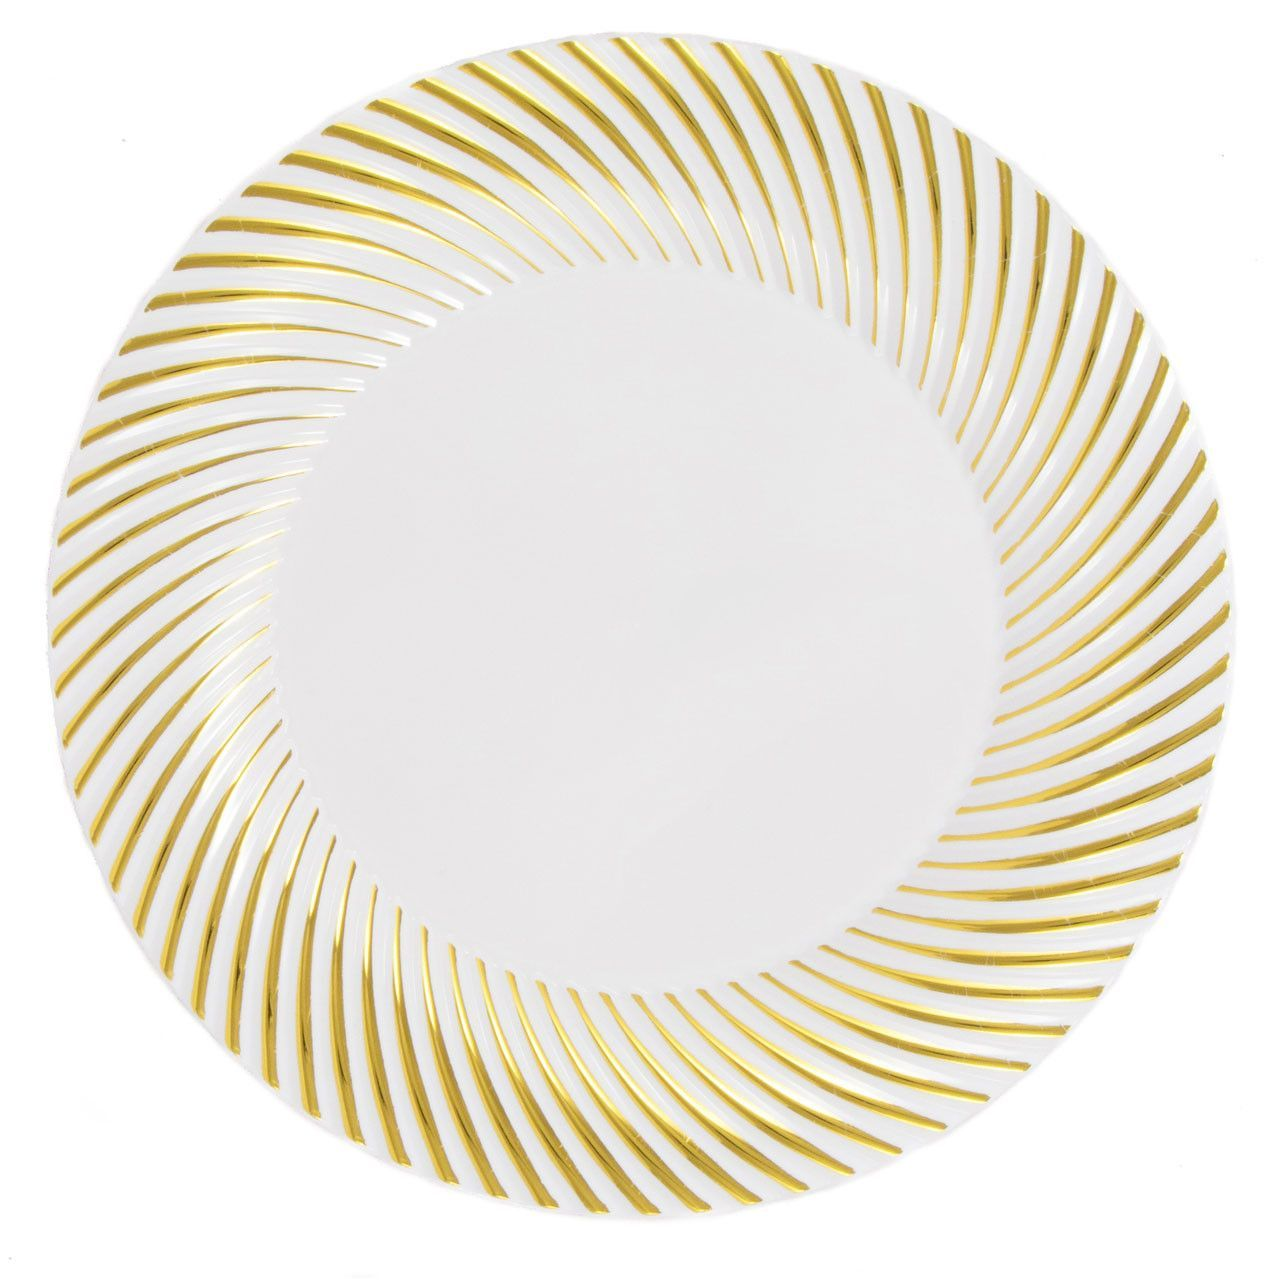 Plastic 10 1/4 Inch White Dinner Plate with Gold Rim/Case of 120  sc 1 st  Pinterest & Plastic 10 1/4 Inch White Dinner Plate with Gold Rim/Case of 120 ...